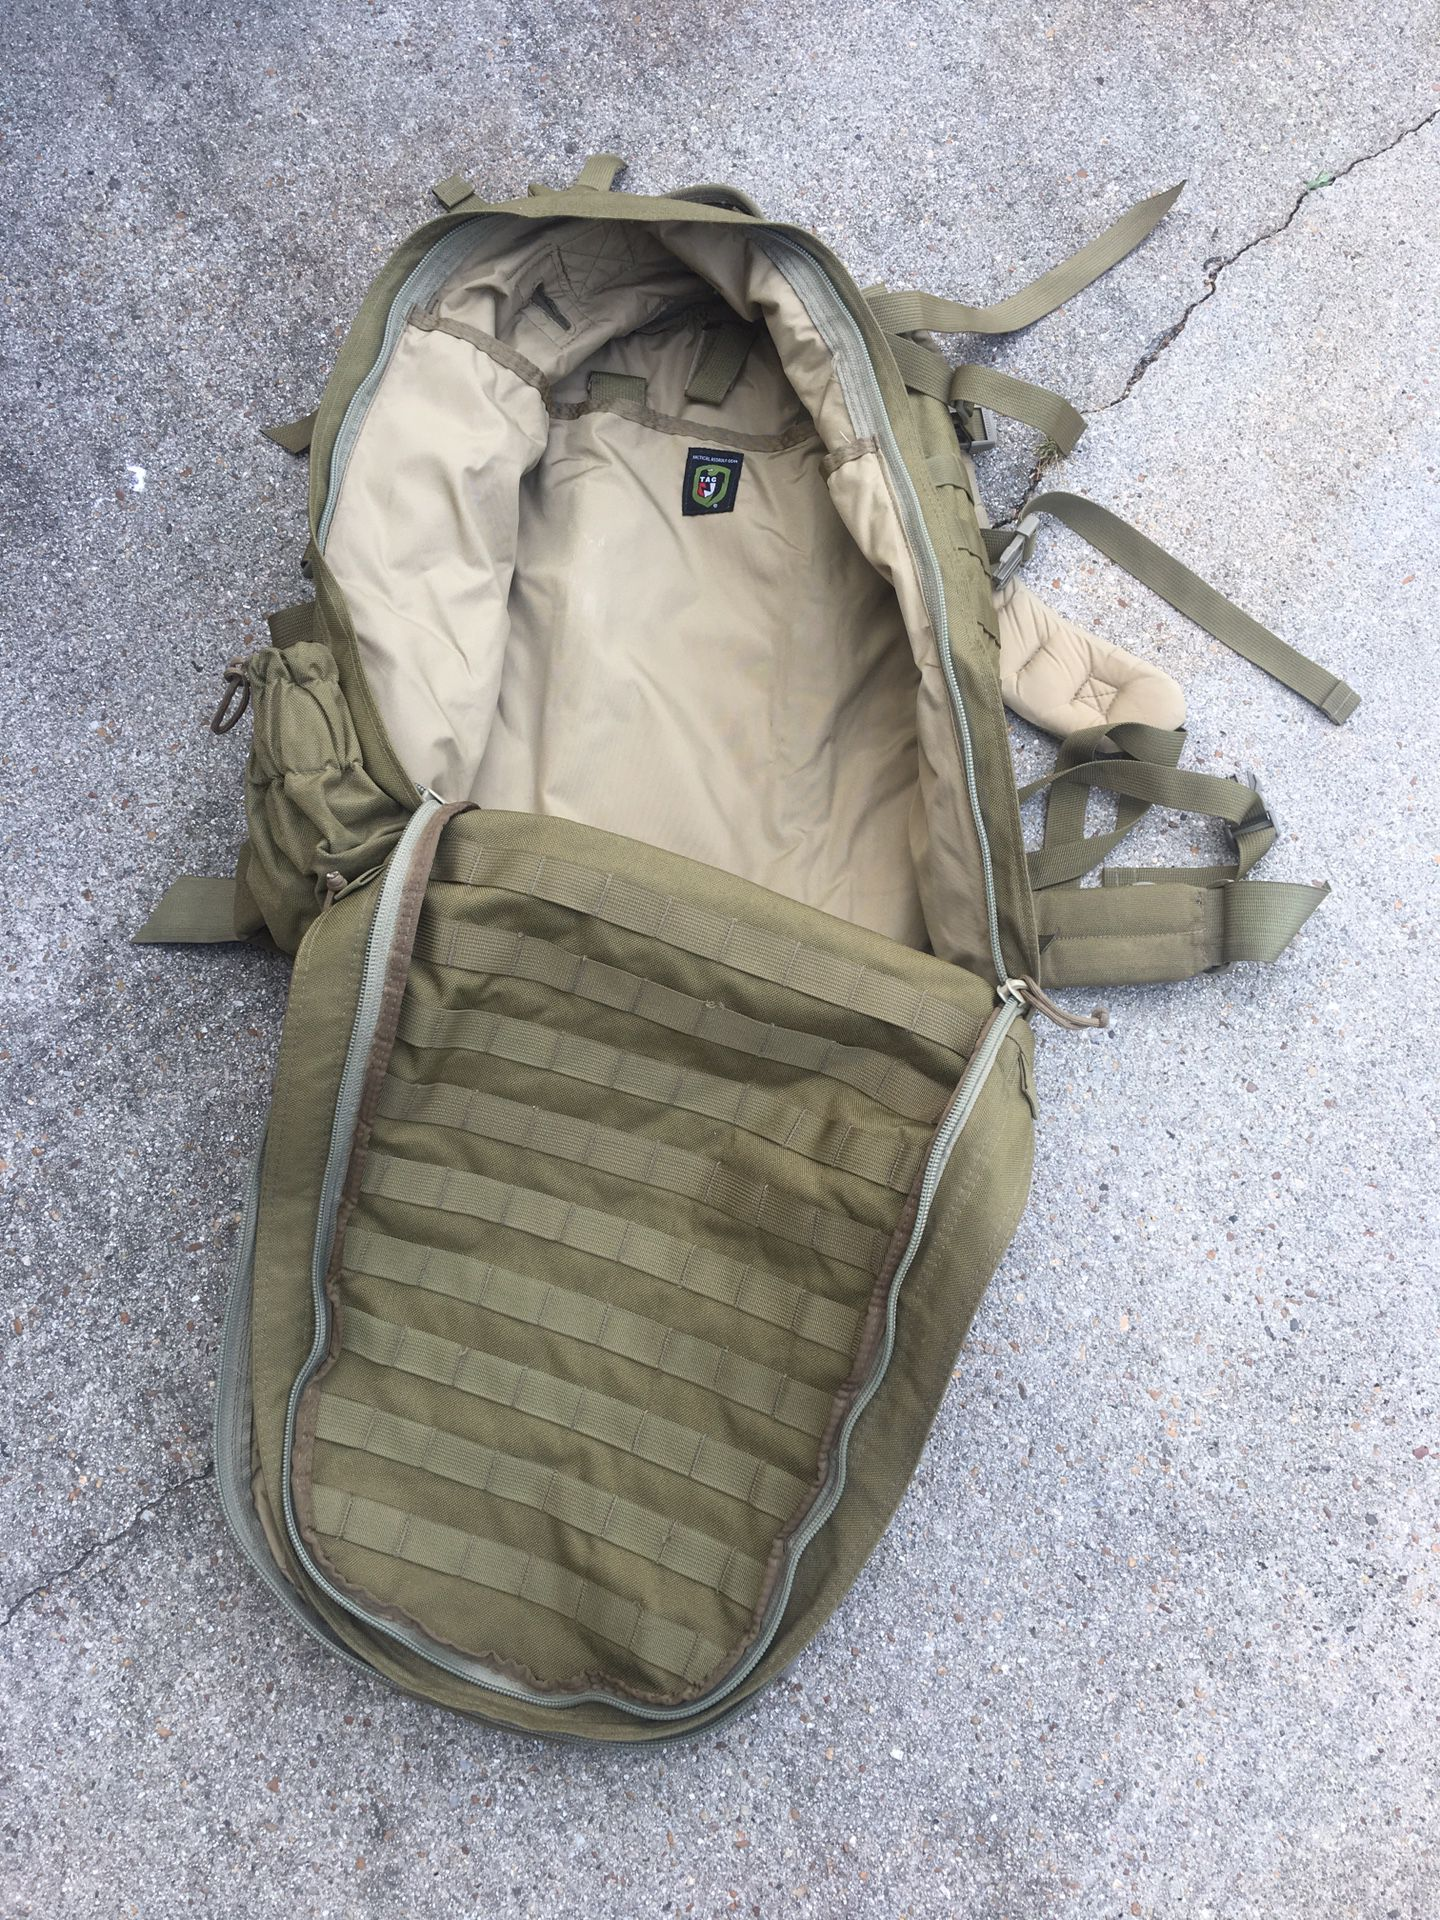 TAG tactical assault gear pack backpack